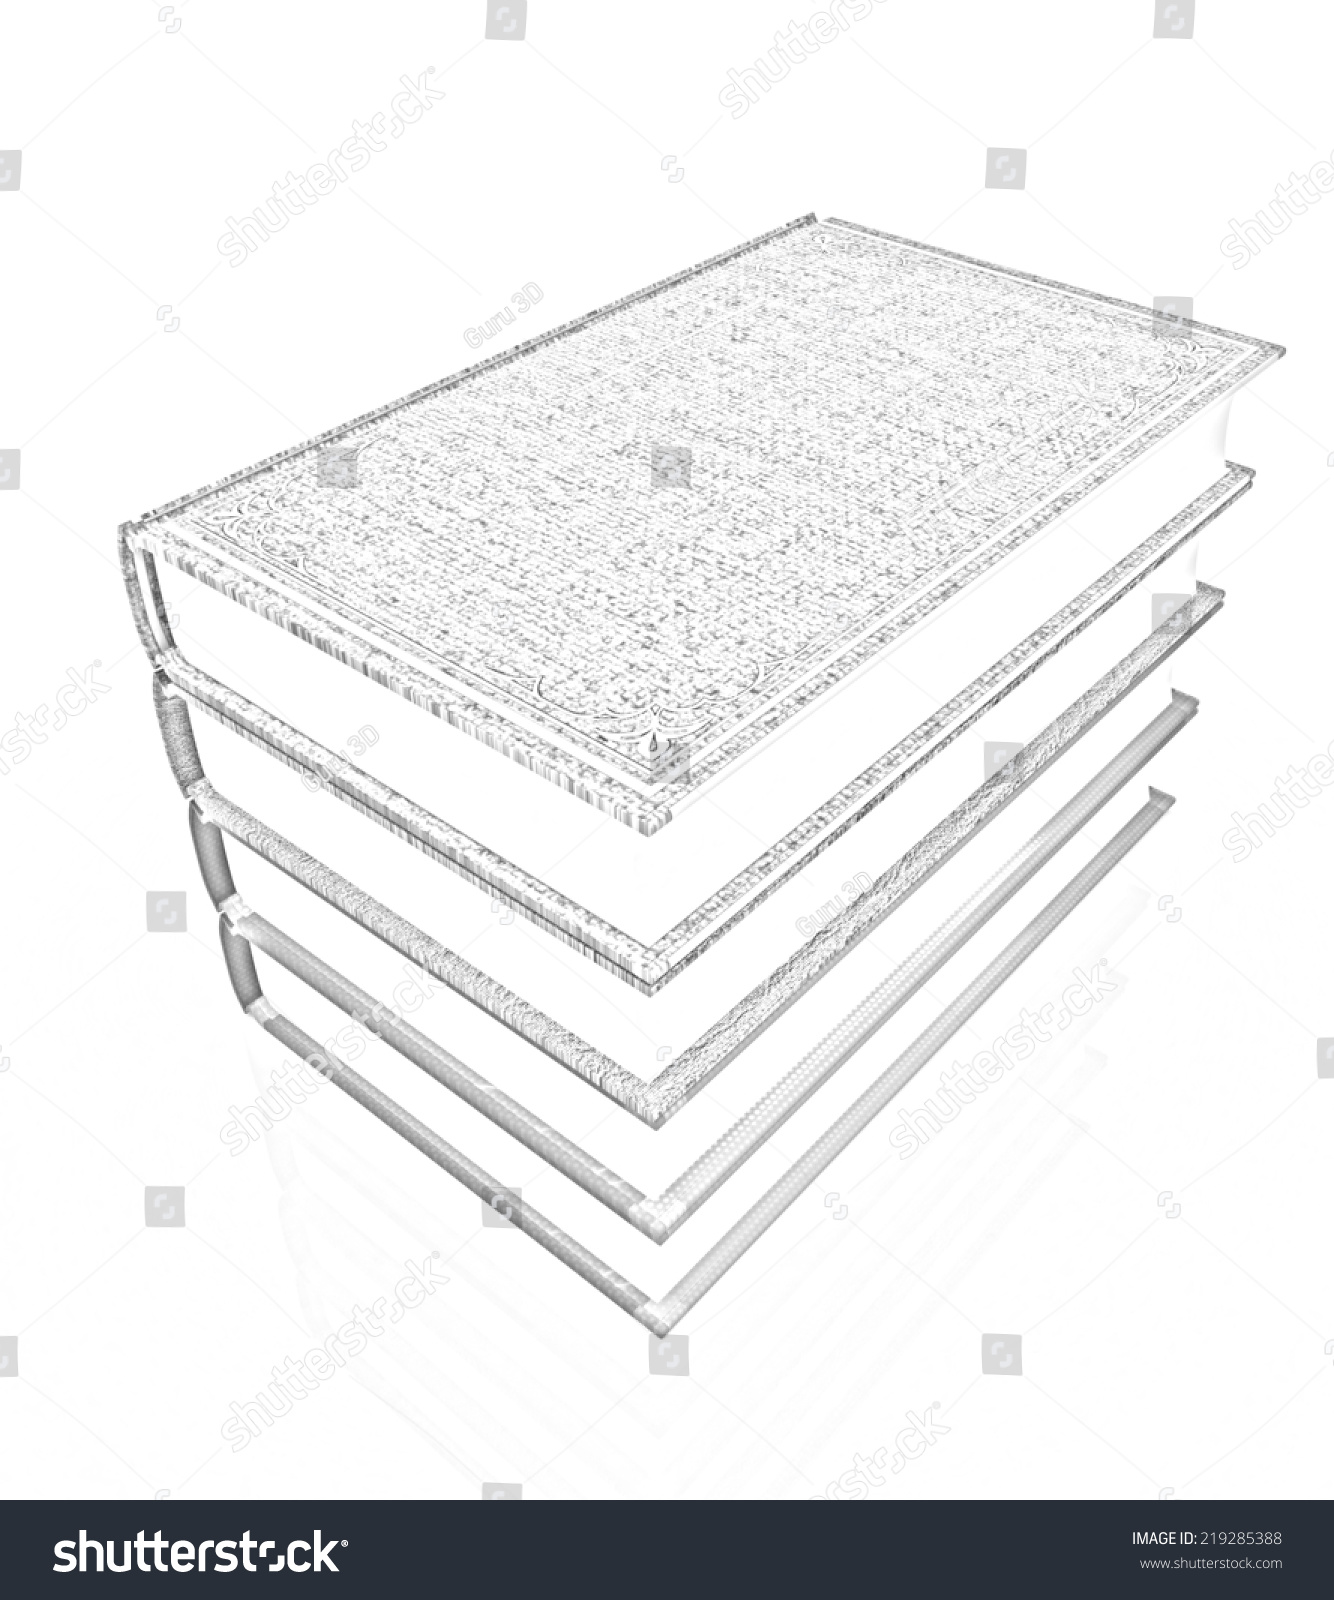 The stack of books on a white background pencil drawing